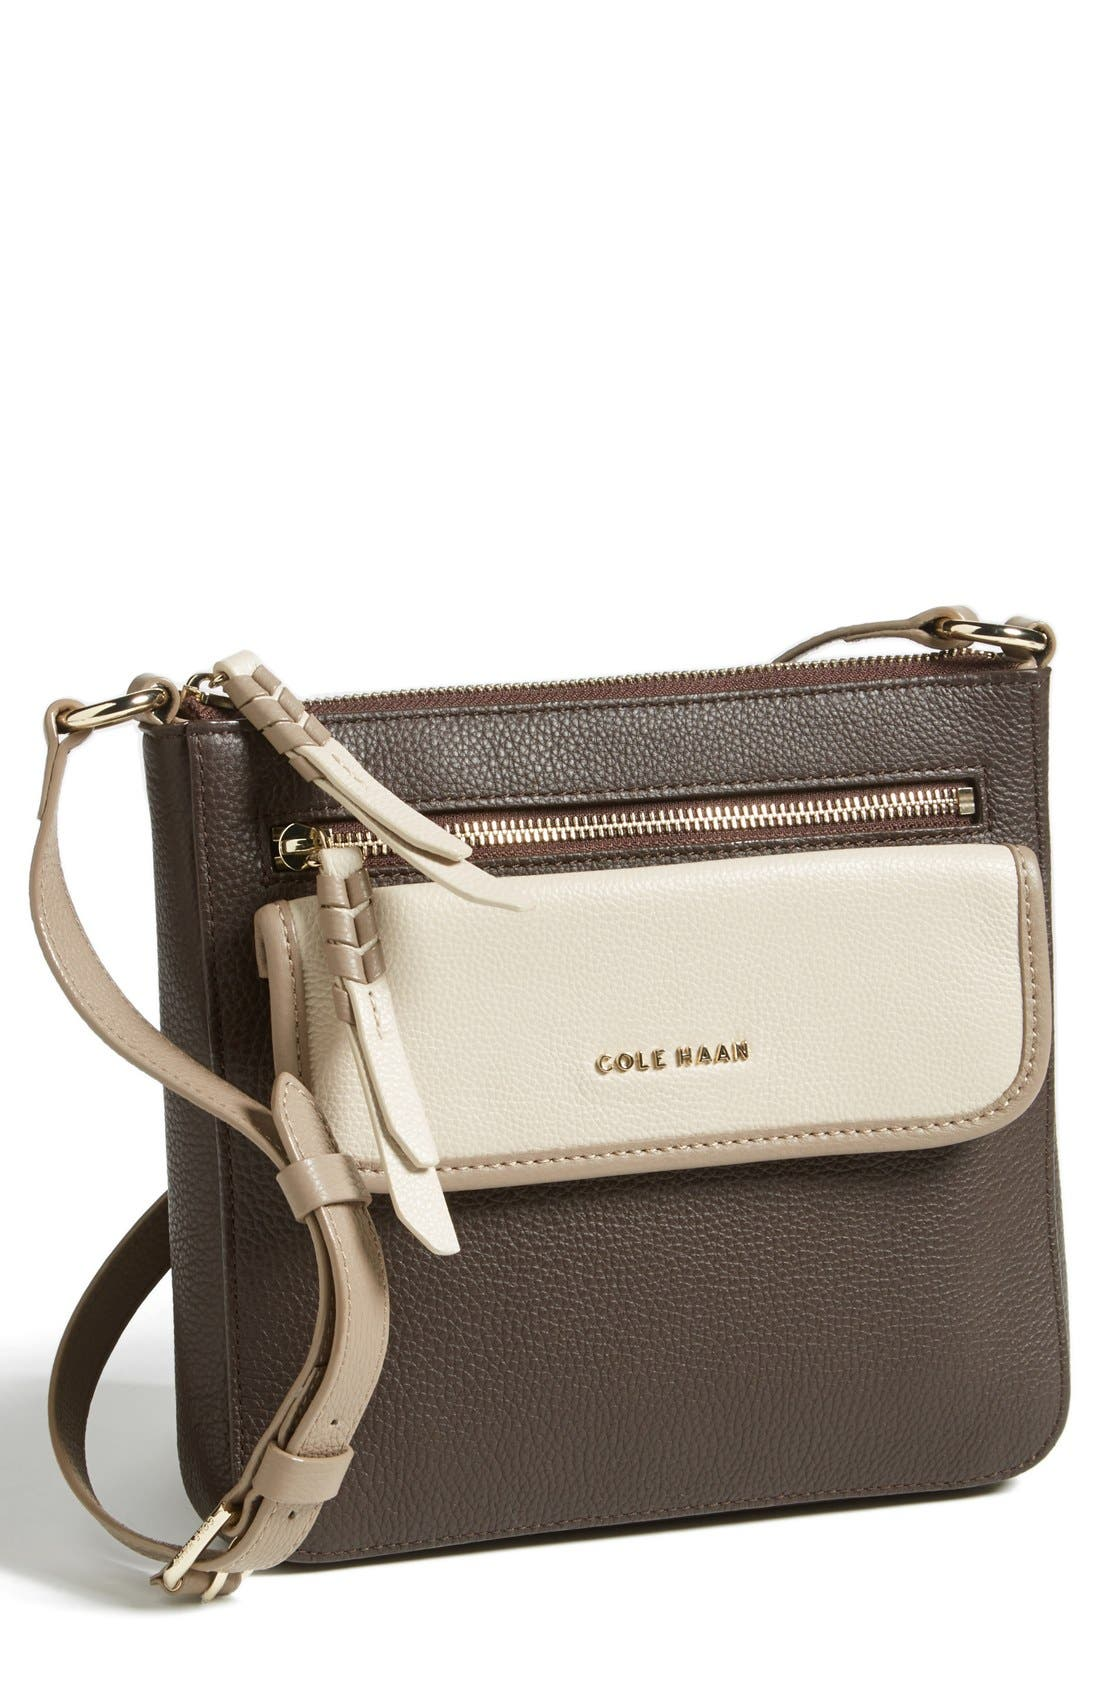 Main Image - Cole Haan Leather Crossbody Bag